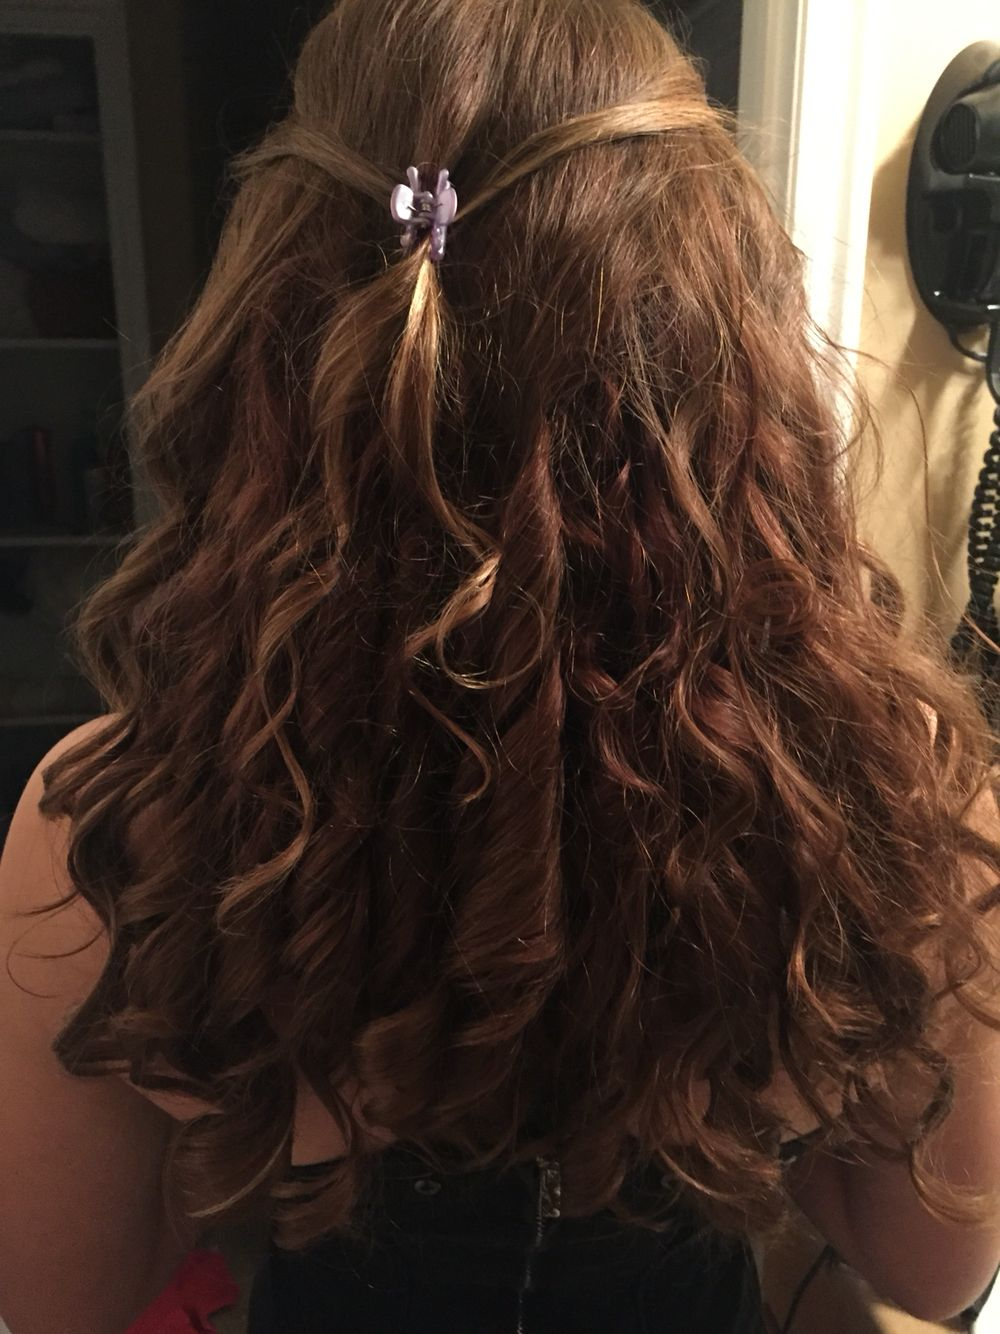 Curled my daughters hair